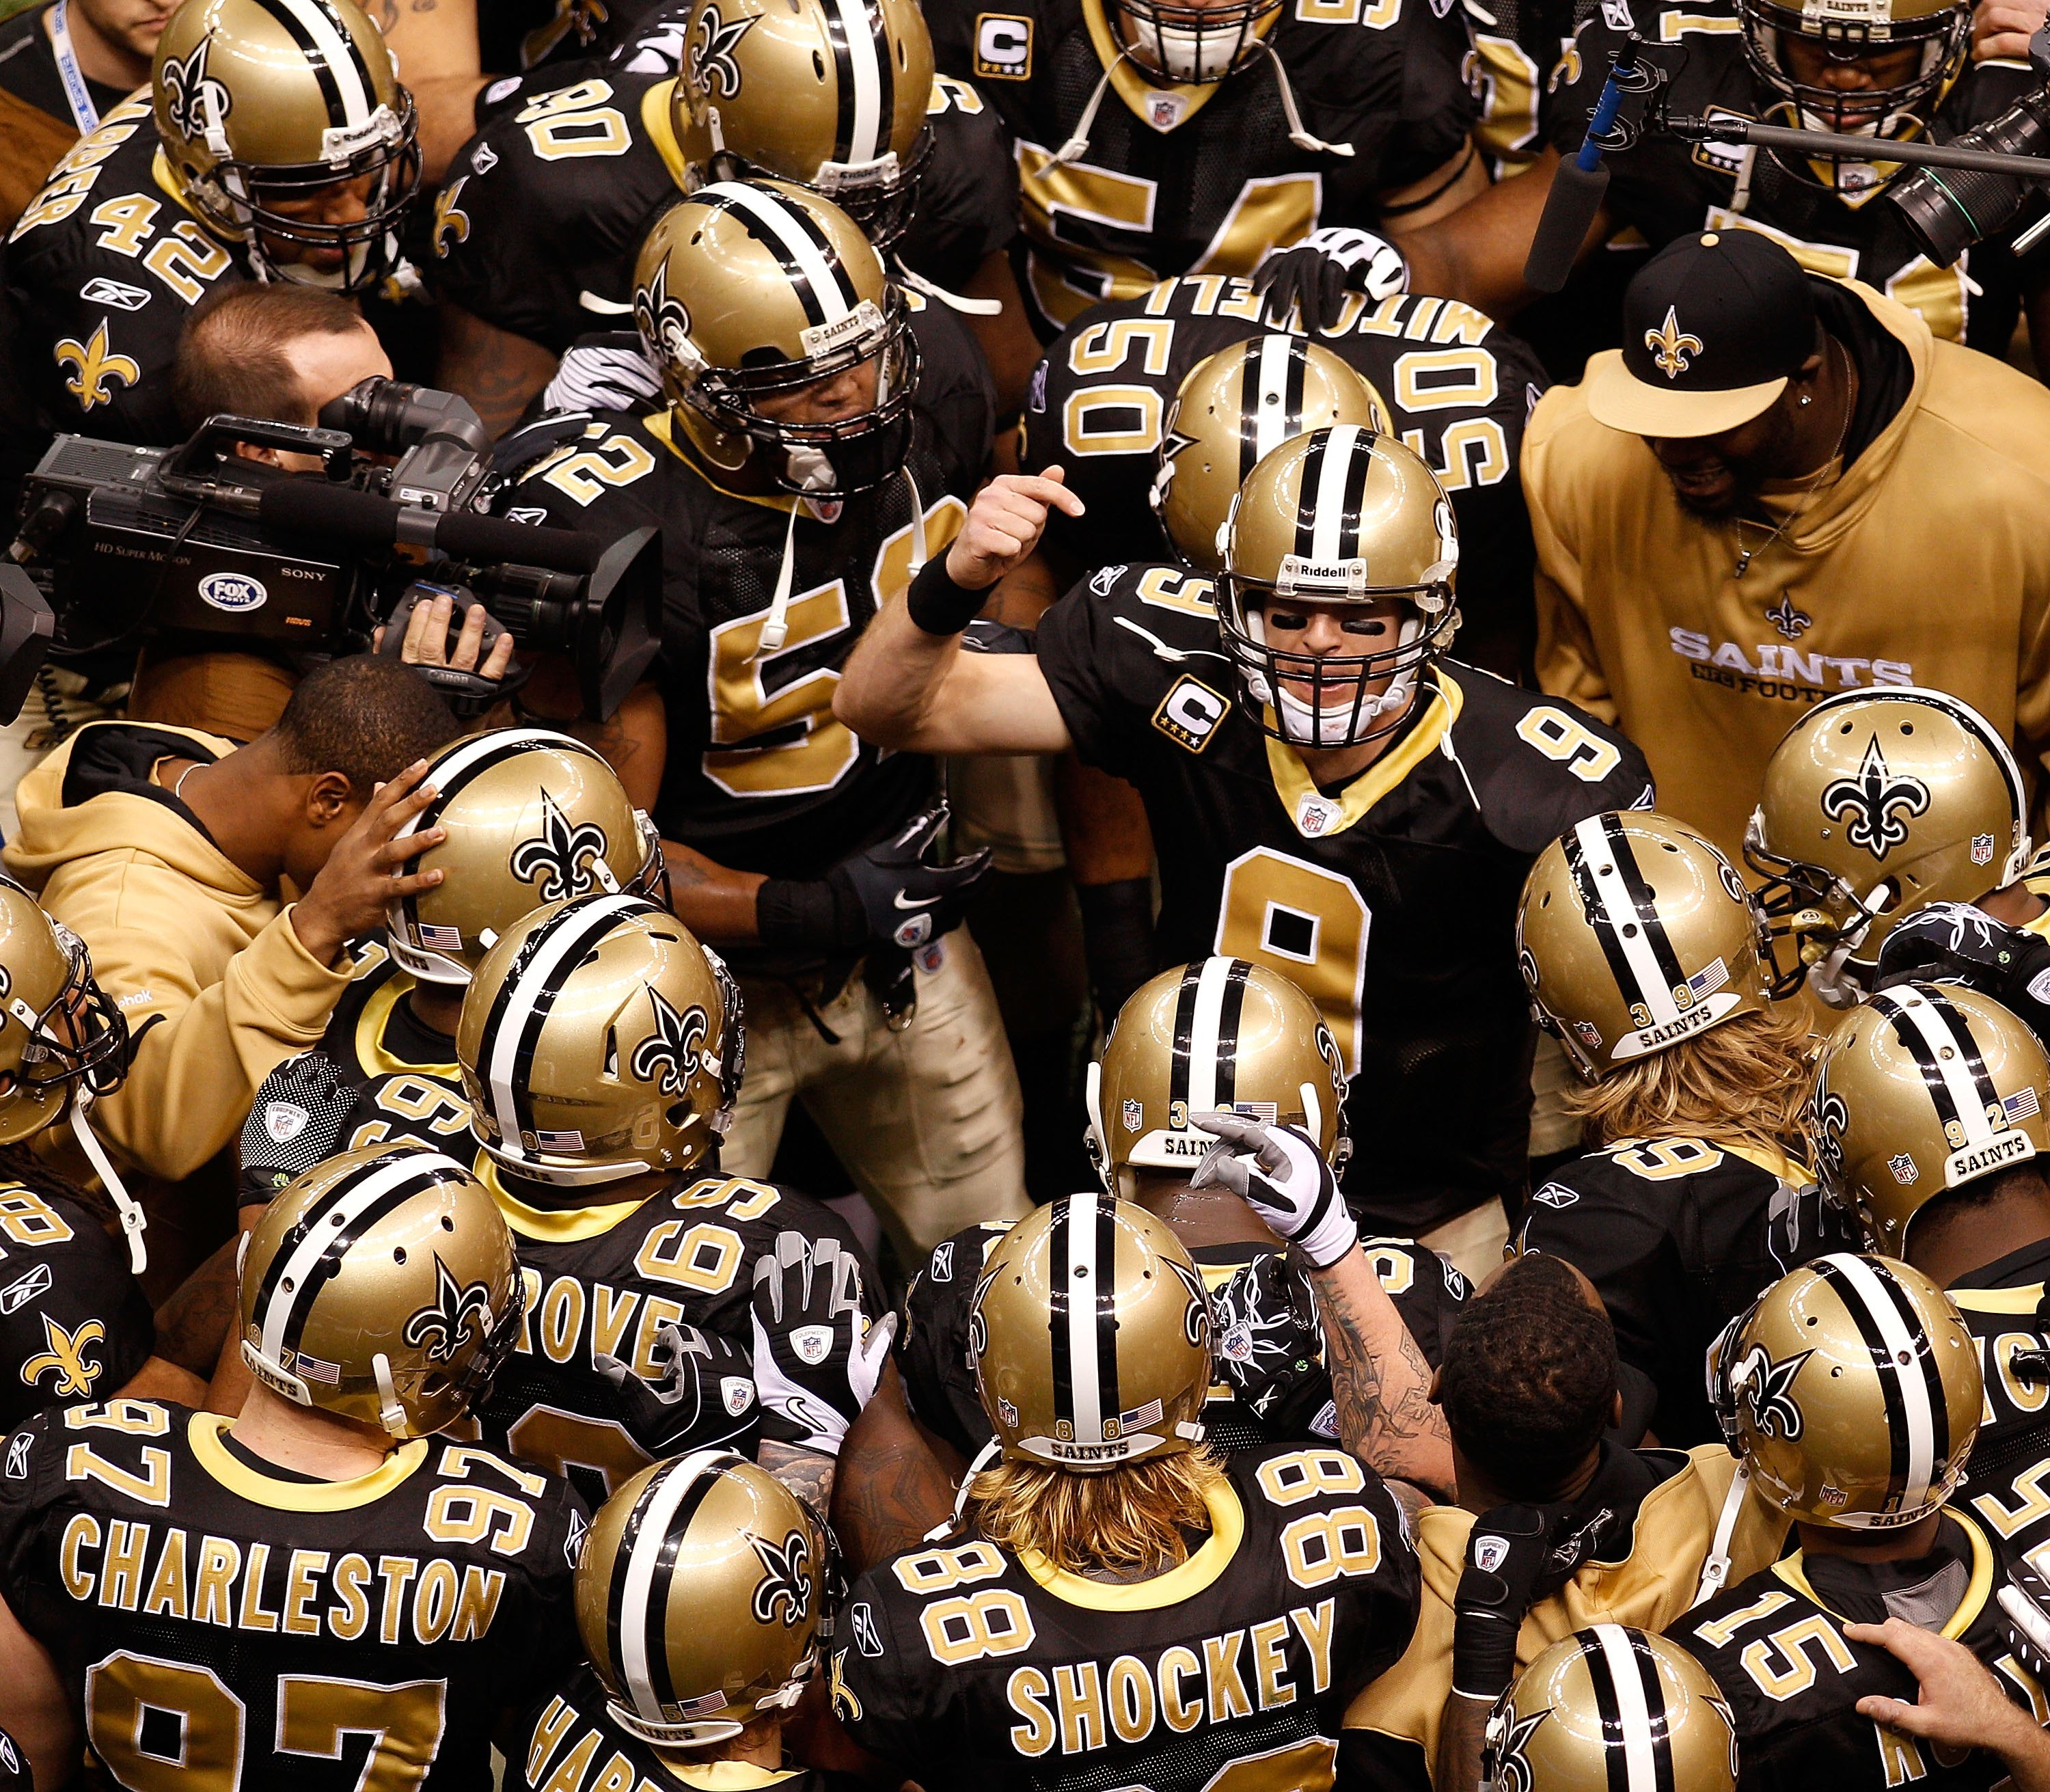 NEW ORLEANS - JANUARY 24:  Quarterback Drew Brees #9 of the New Orleans Saints addresses his teammates prior to playing against the Minnesota Vikings during the NFC Championship Game at the Louisiana Superdome on January 24, 2010 in New Orleans, Louisiana